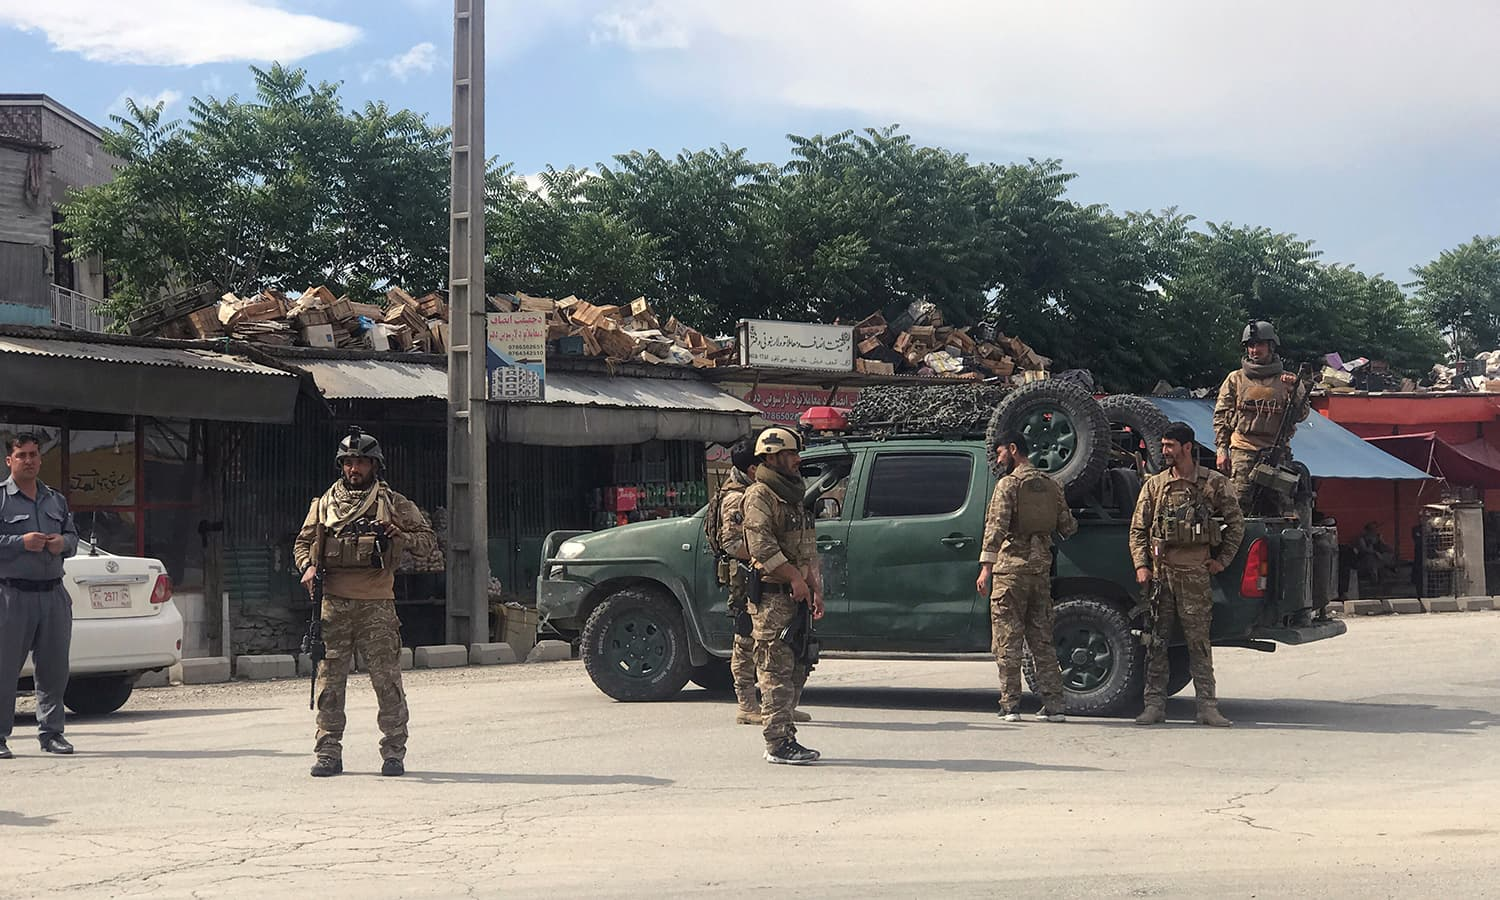 Imam killed, 16 wounded in Kabul mosque blast: officials